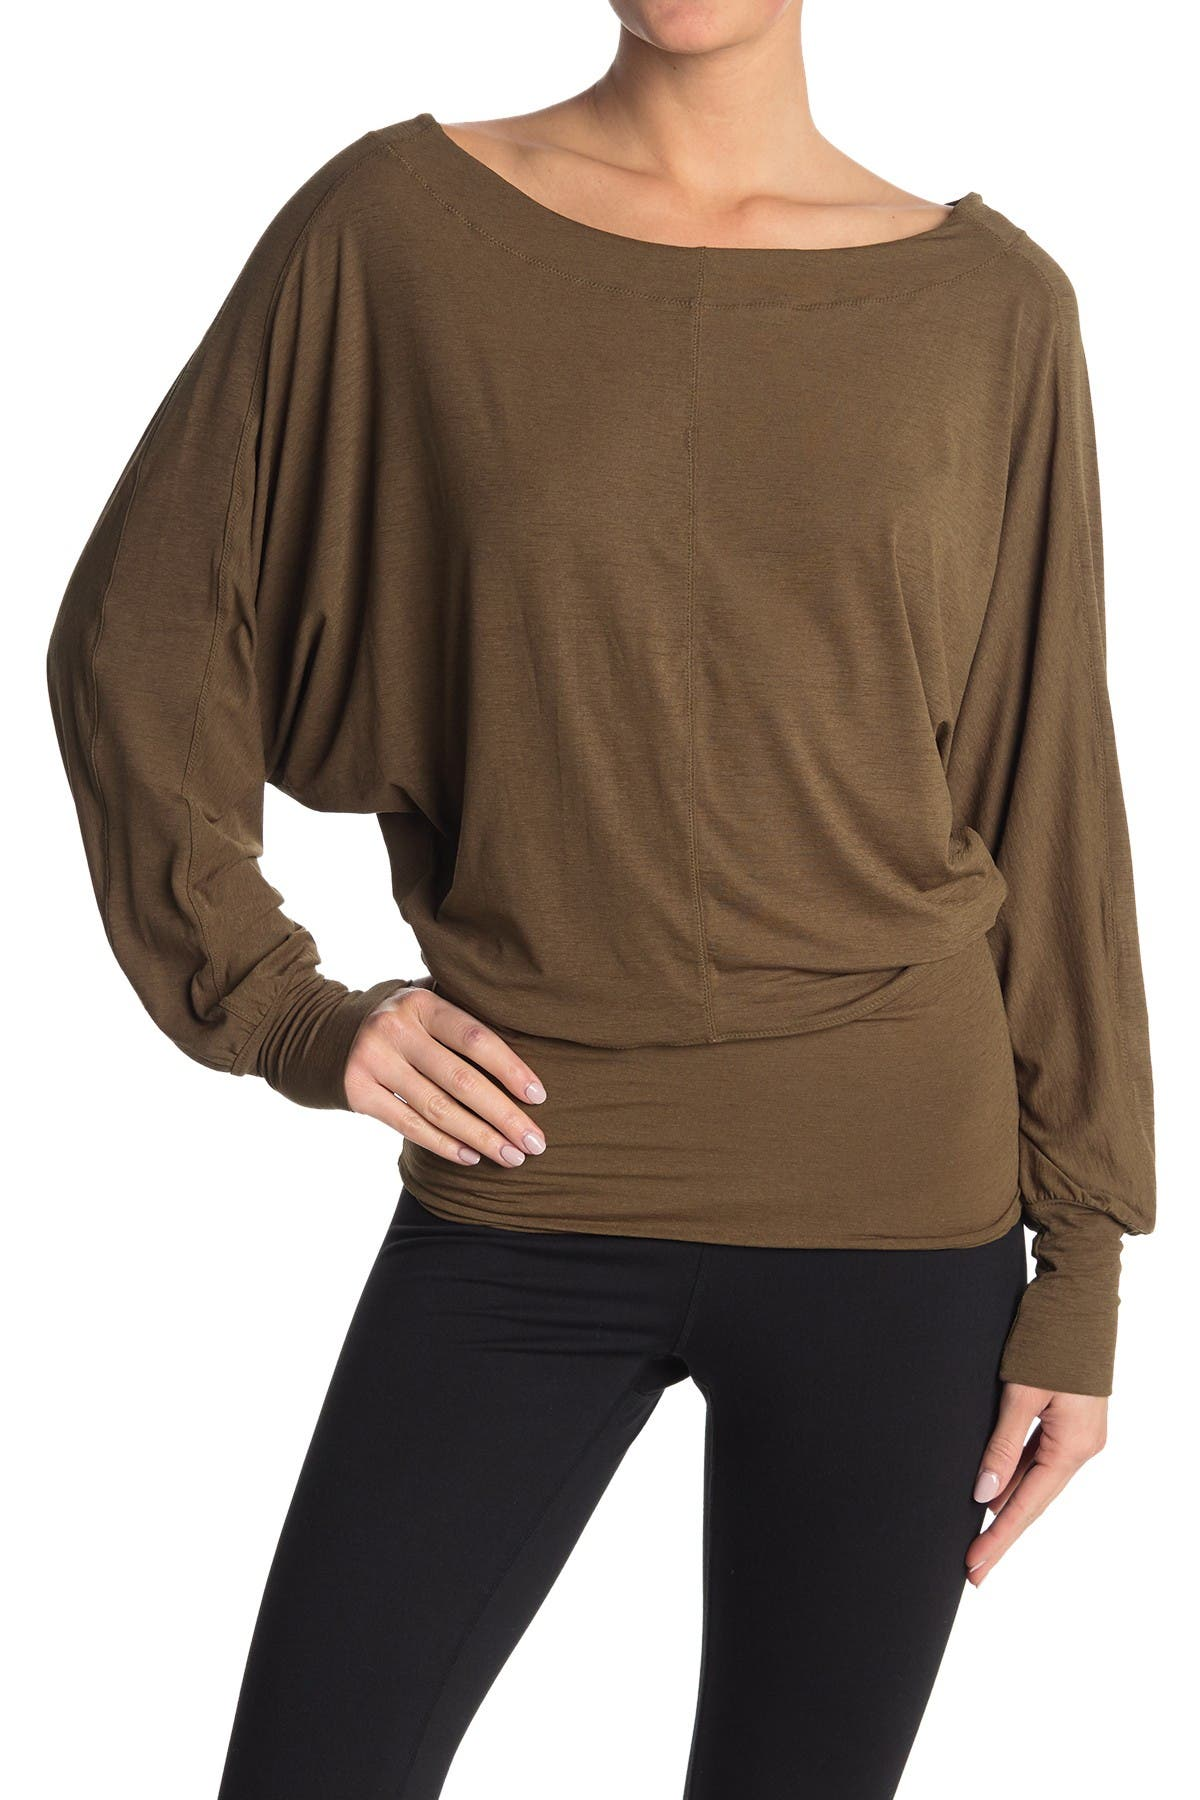 Image of Free People FP Movement Sky High Long Sleeve Top